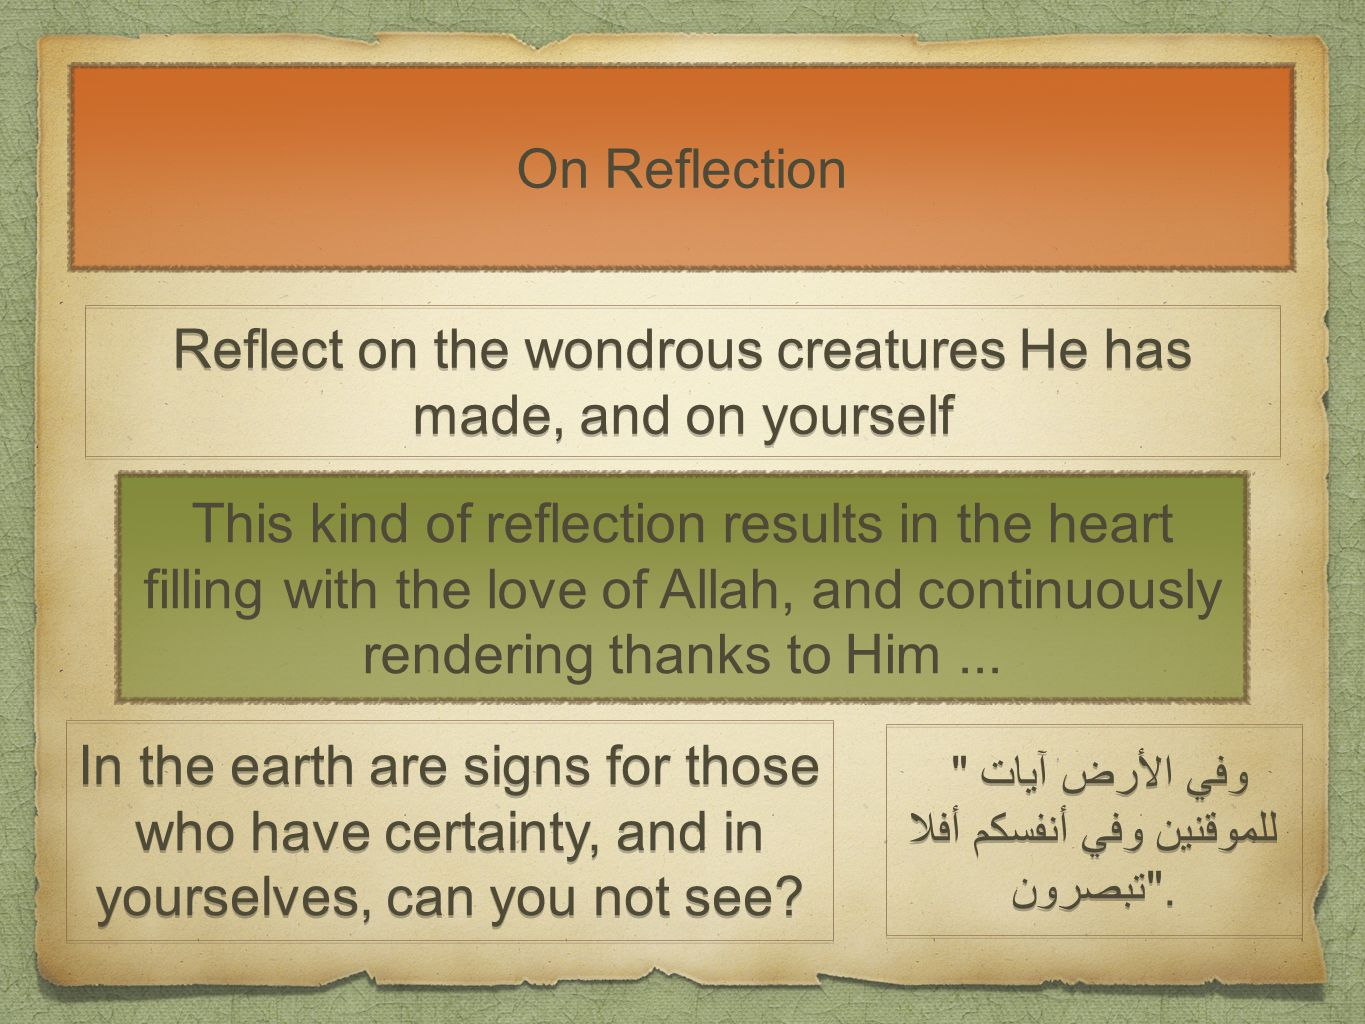 On Reflection Reflect on the wondrous creatures He has made, and on yourself This kind of reflection results in the heart filling with the love of Allah, and continuously rendering thanks to Him...